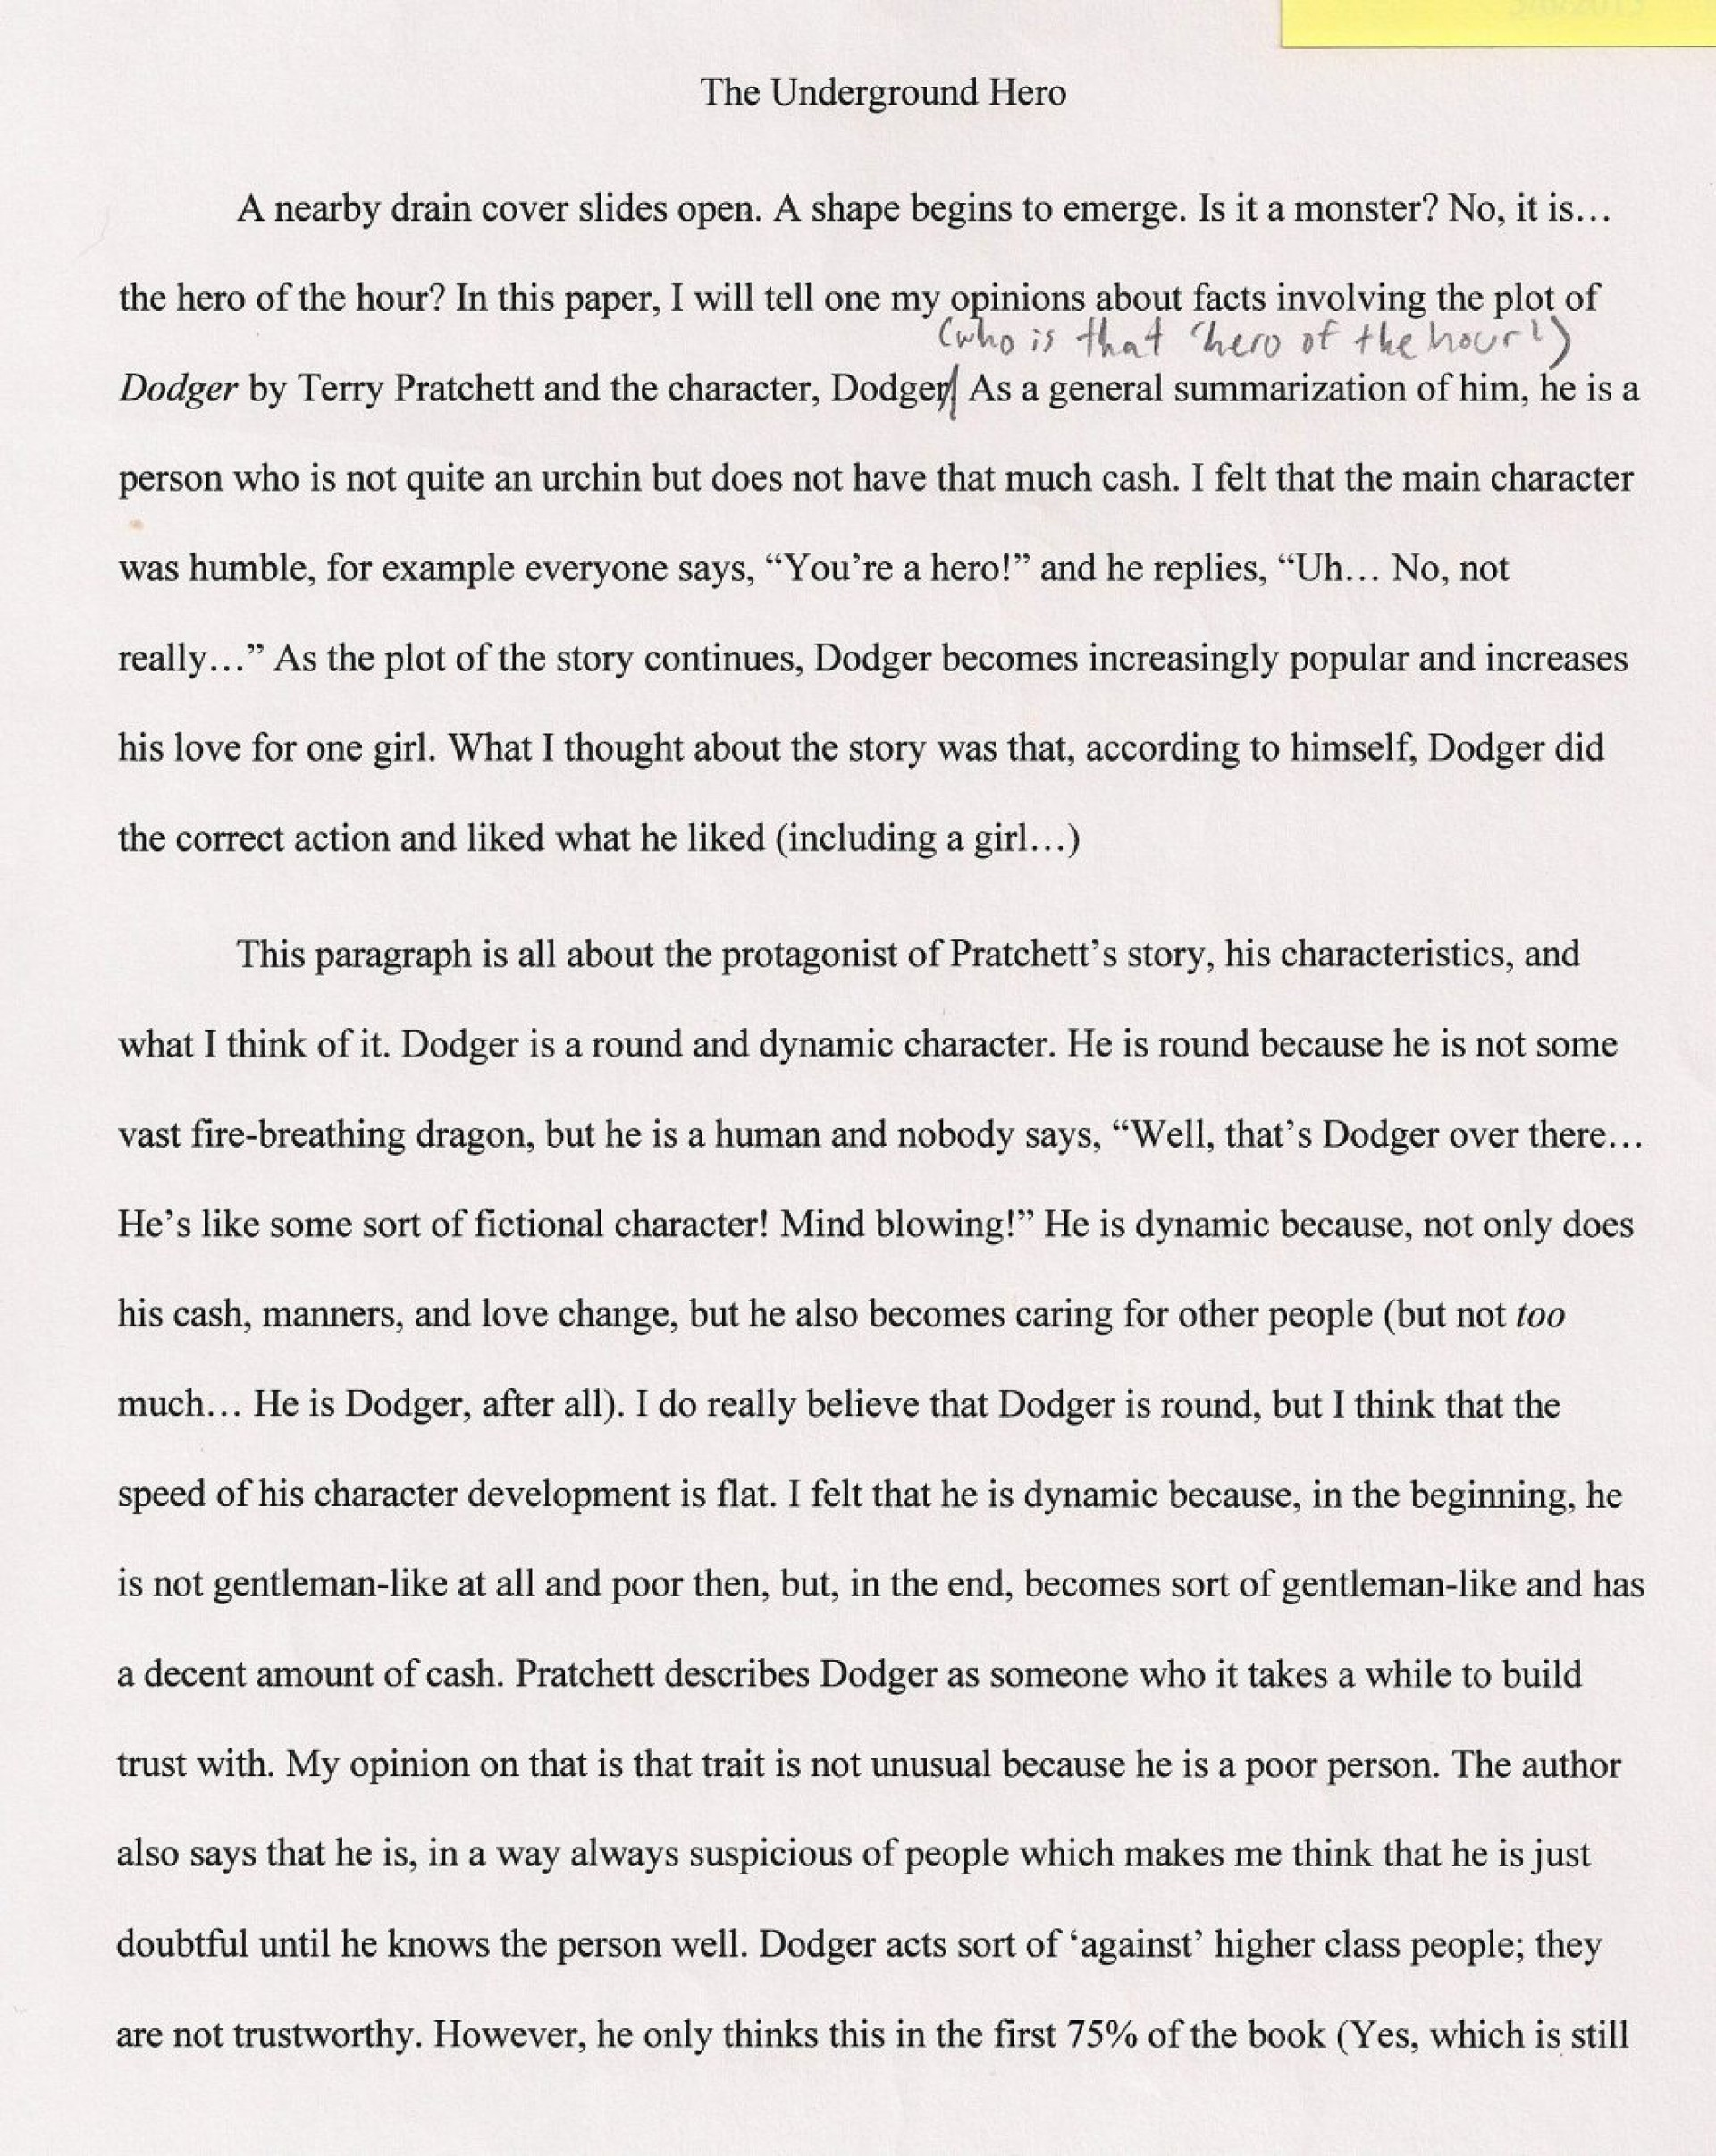 027 Essay On My Favorite Teacher For Kids College The Underground H Favourite Essays 1048x1317 Marvelous Teachers Importance Class In Urdu Write An 1920